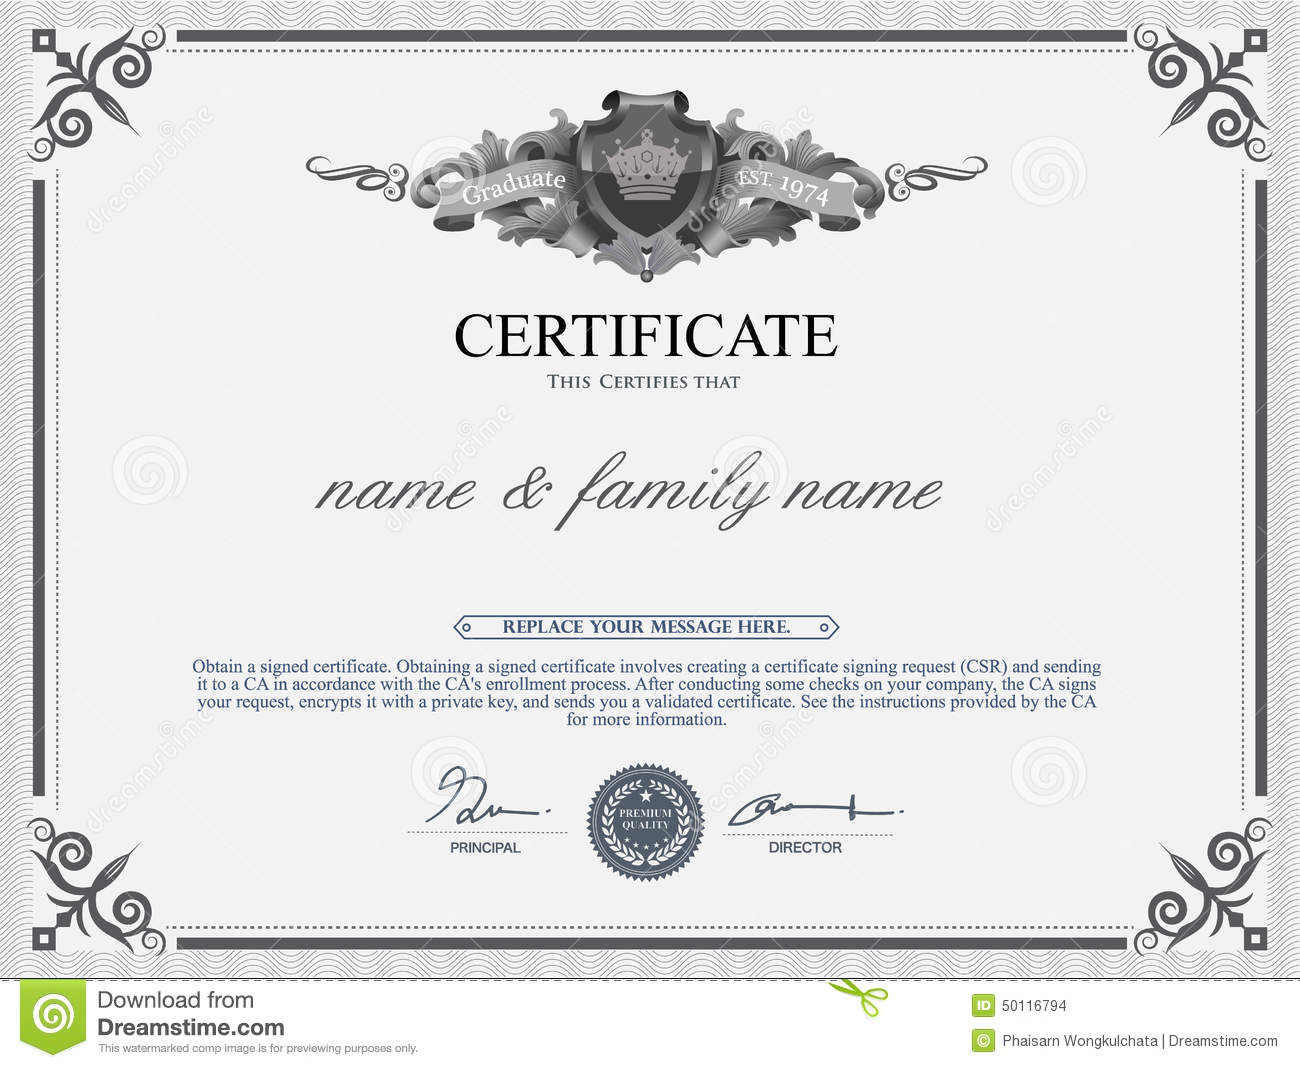 Chef certificate template choice image templates example free chef certificate template choice image templates example free certificate design template stock vector illustration of border yelopaper Images